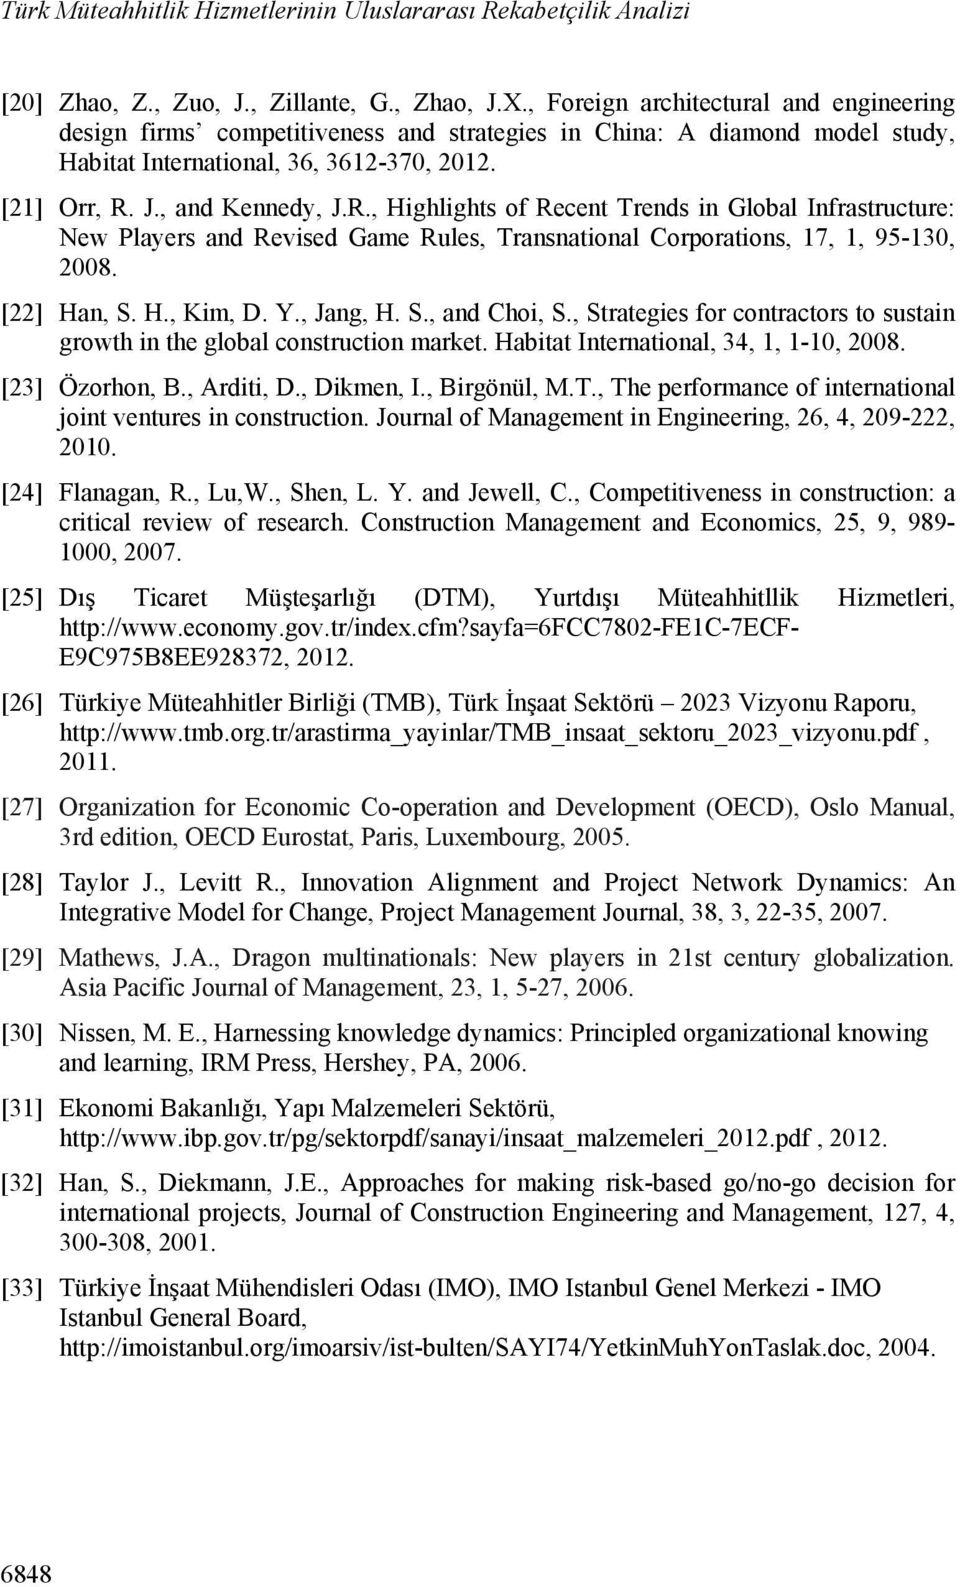 J., and Kennedy, J.R., Highlights of Recent Trends in Global Infrastructure: New Players and Revised Game Rules, Transnational Corporations, 17, 1, 95-130, 2008. [22] Han, S. H., Kim, D. Y., Jang, H.